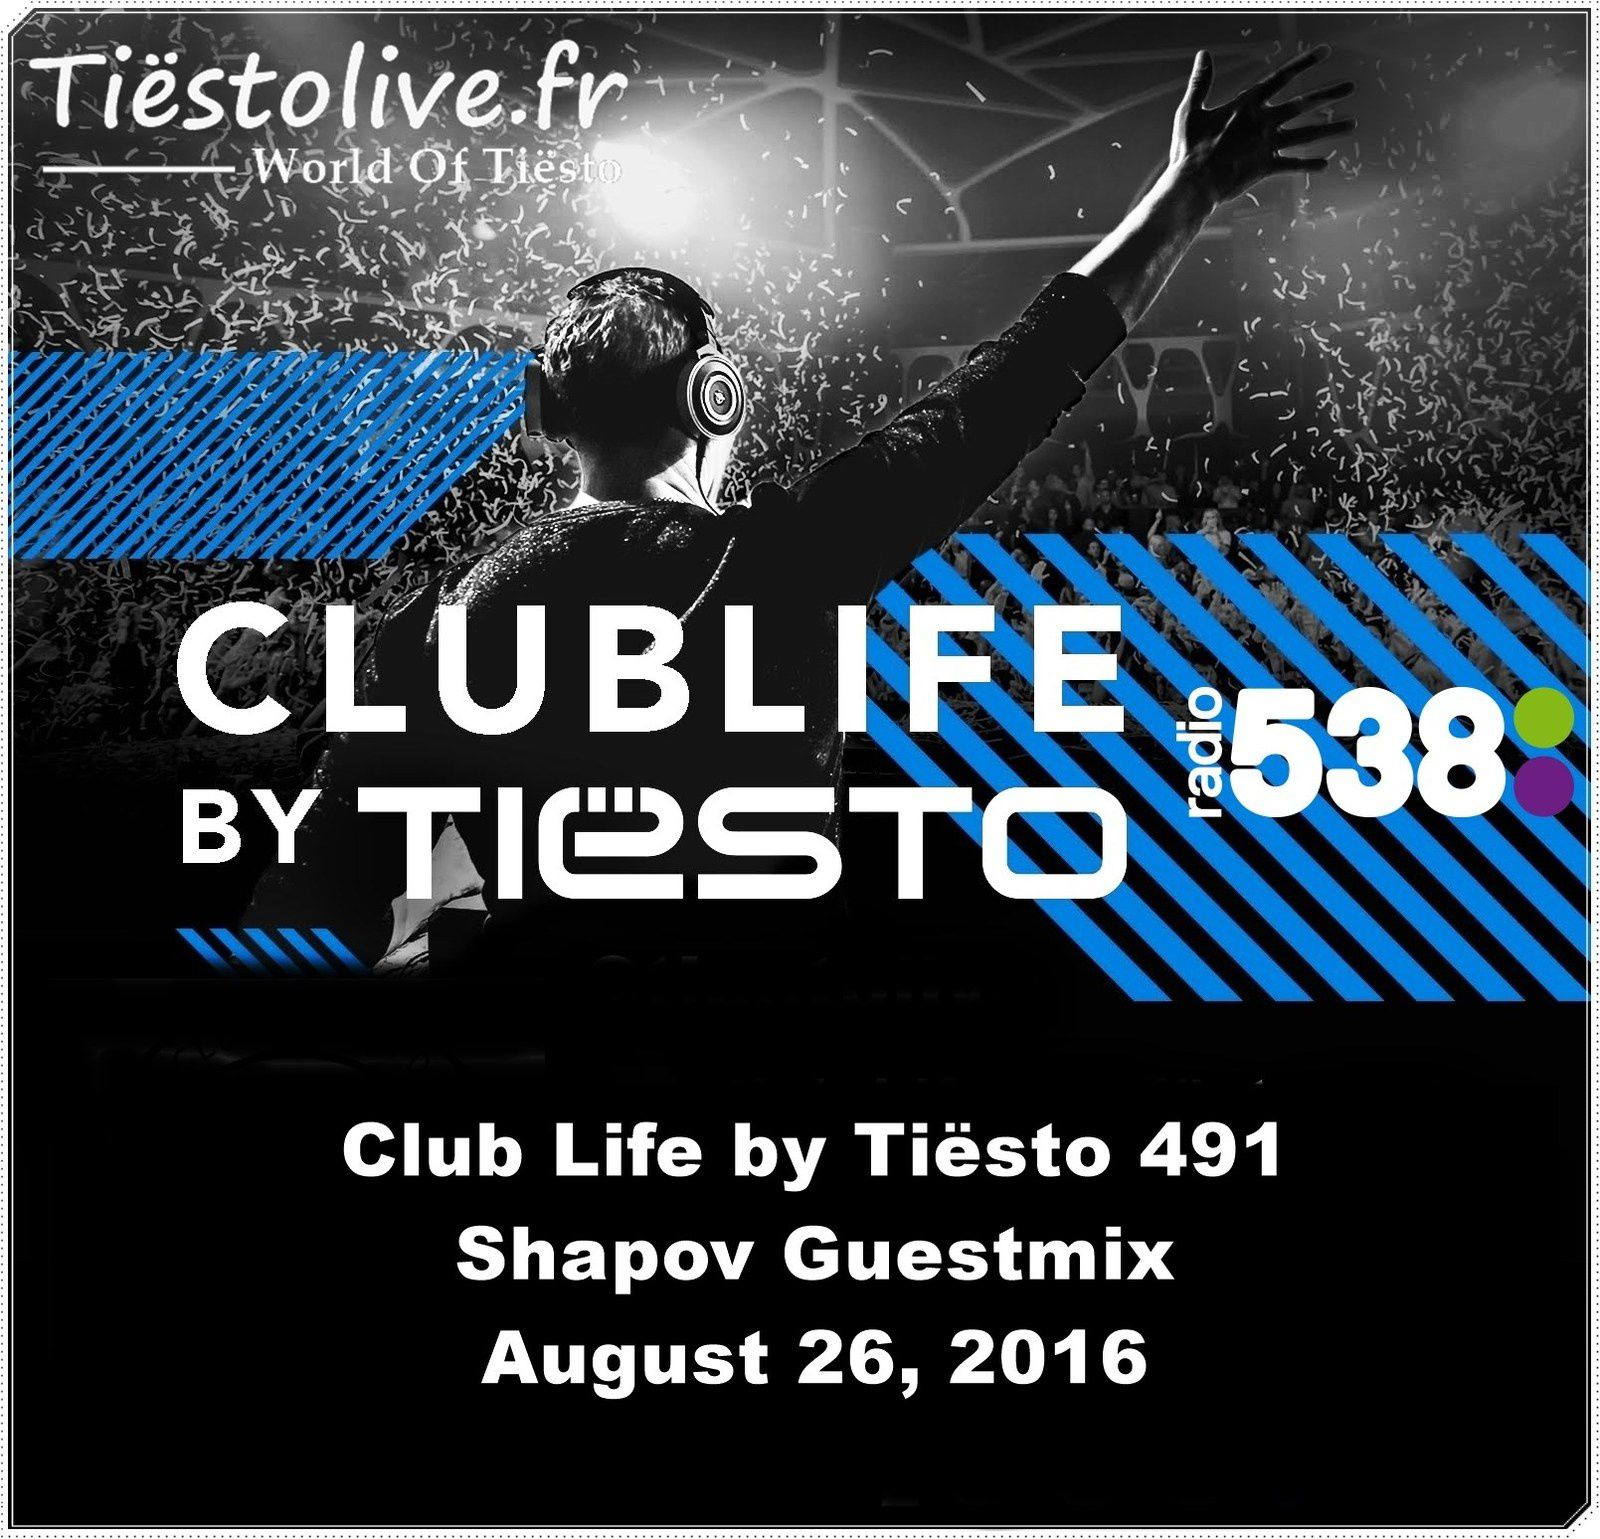 Club Life by Tiësto 491 - Shapov Guestmix - August 26, 2016